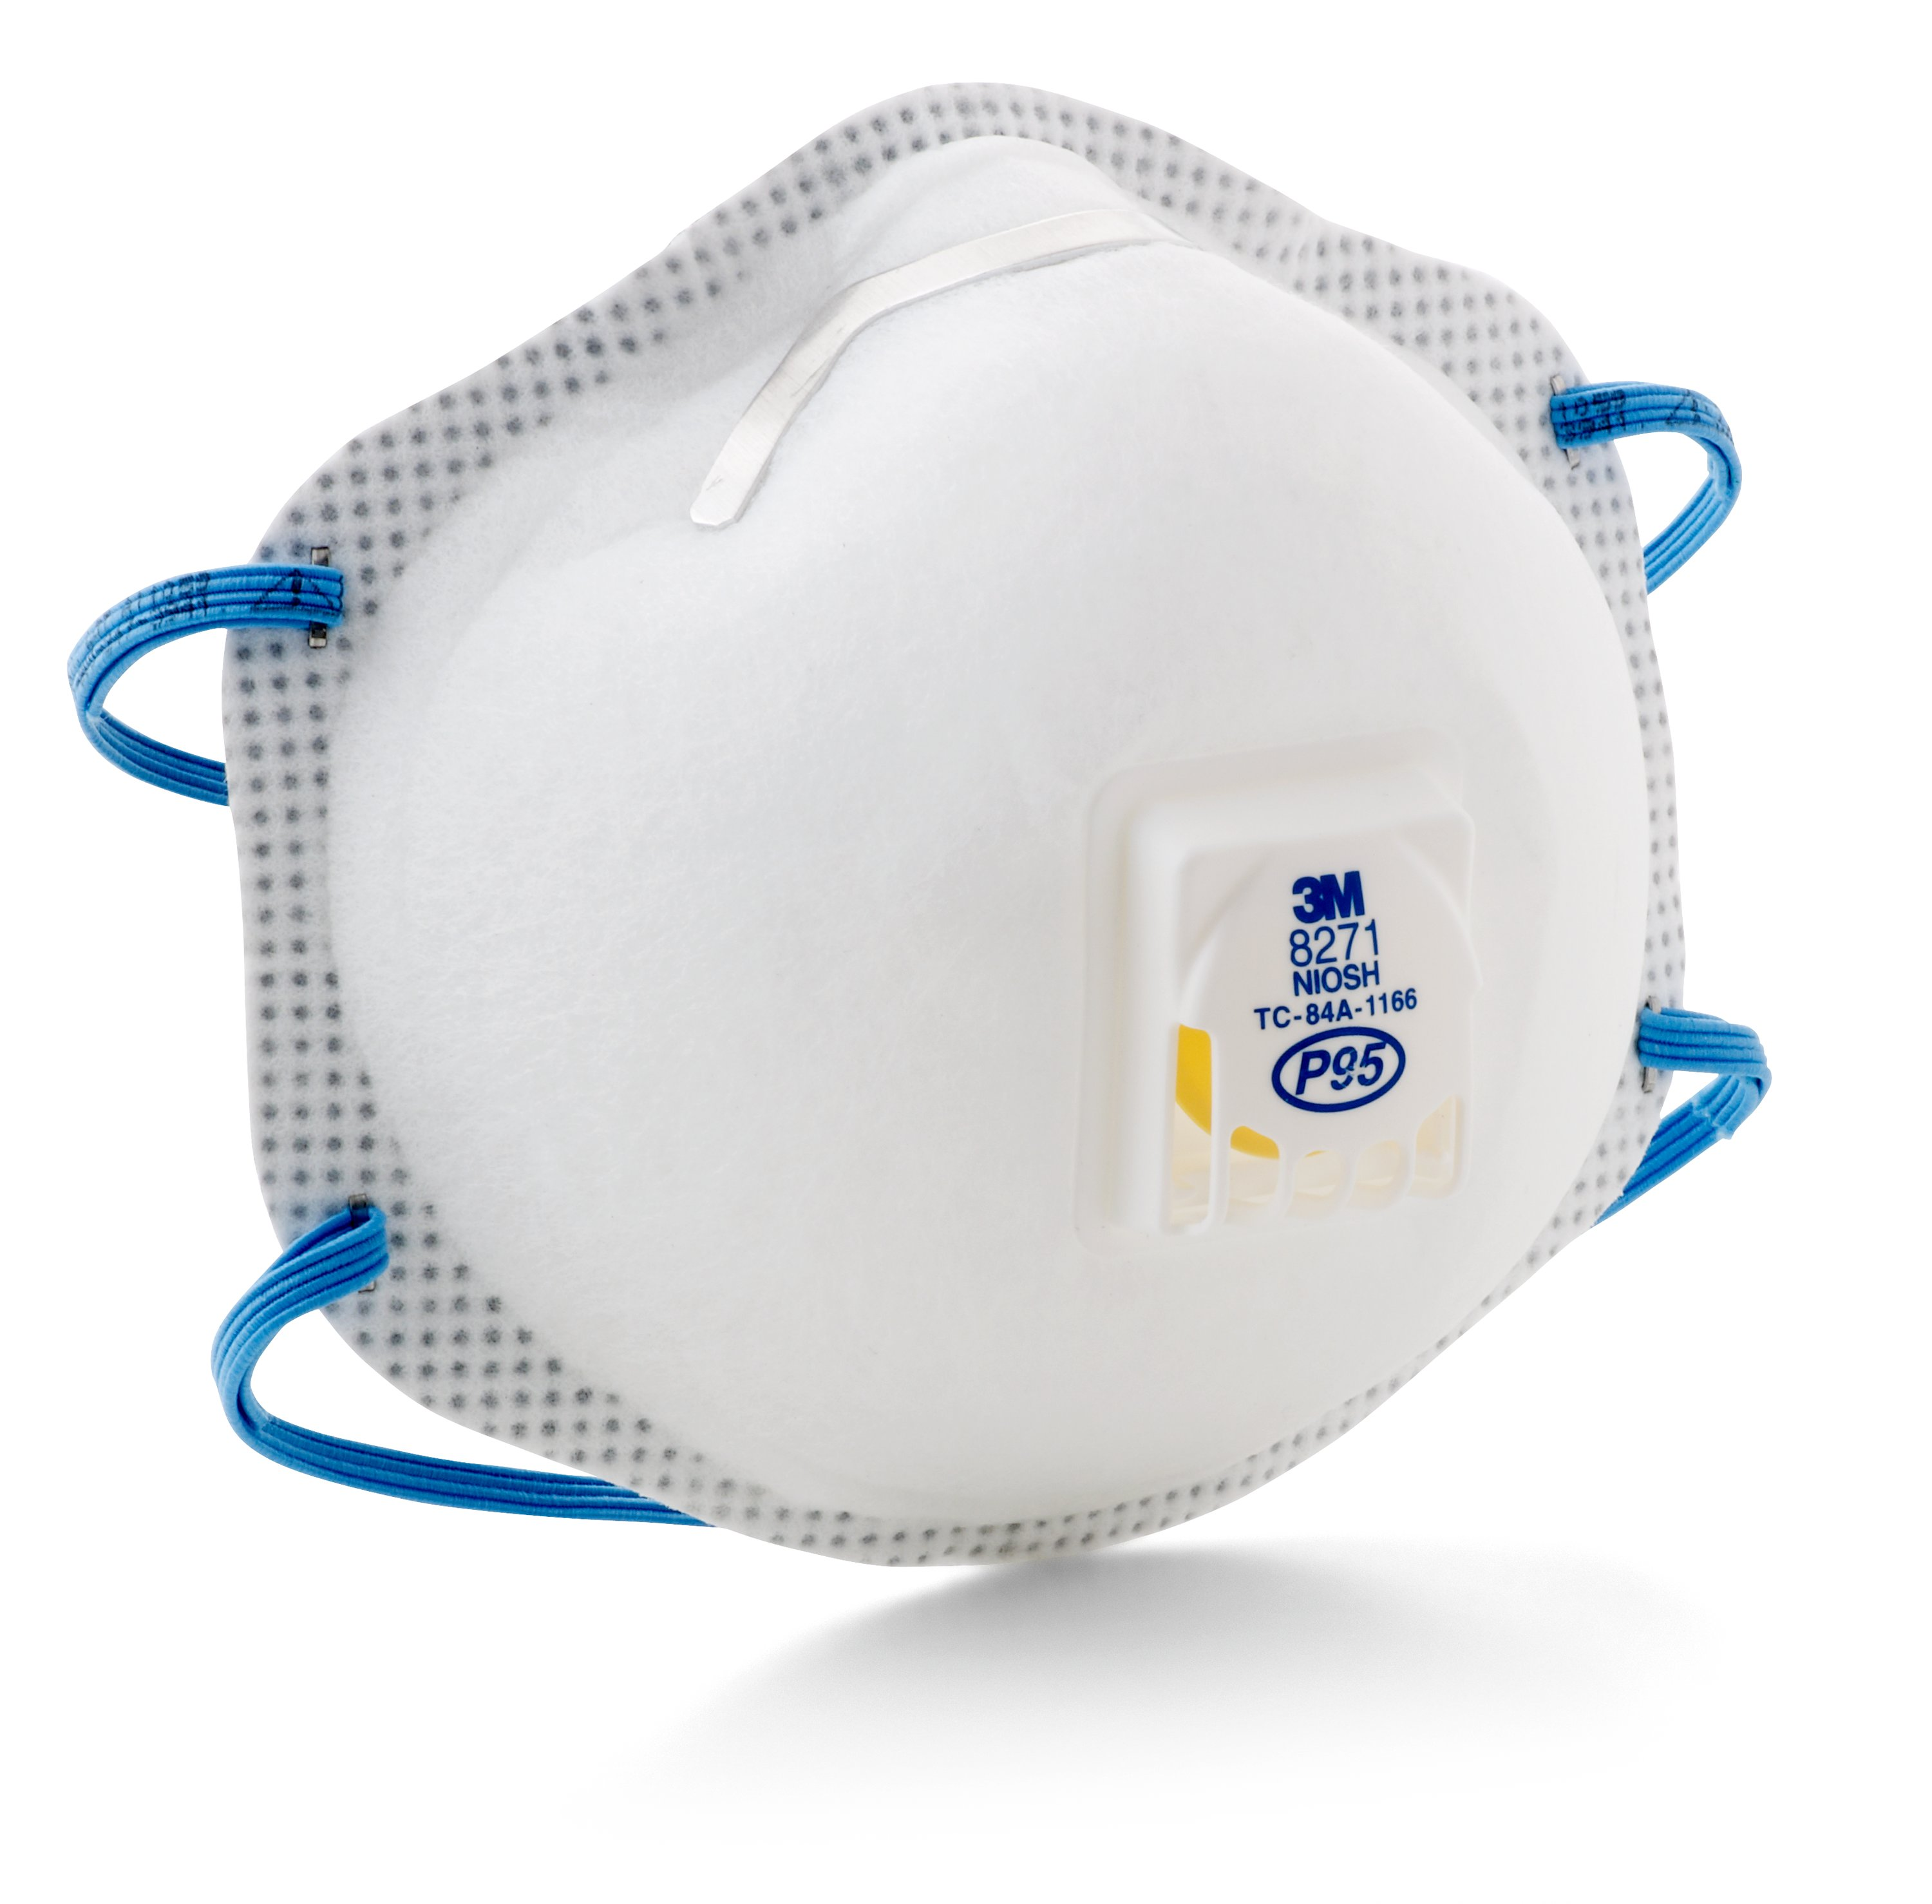 3M™ 8271 Standard Particulate Respirator, Resists: Oil and Non-Oil Based Particles